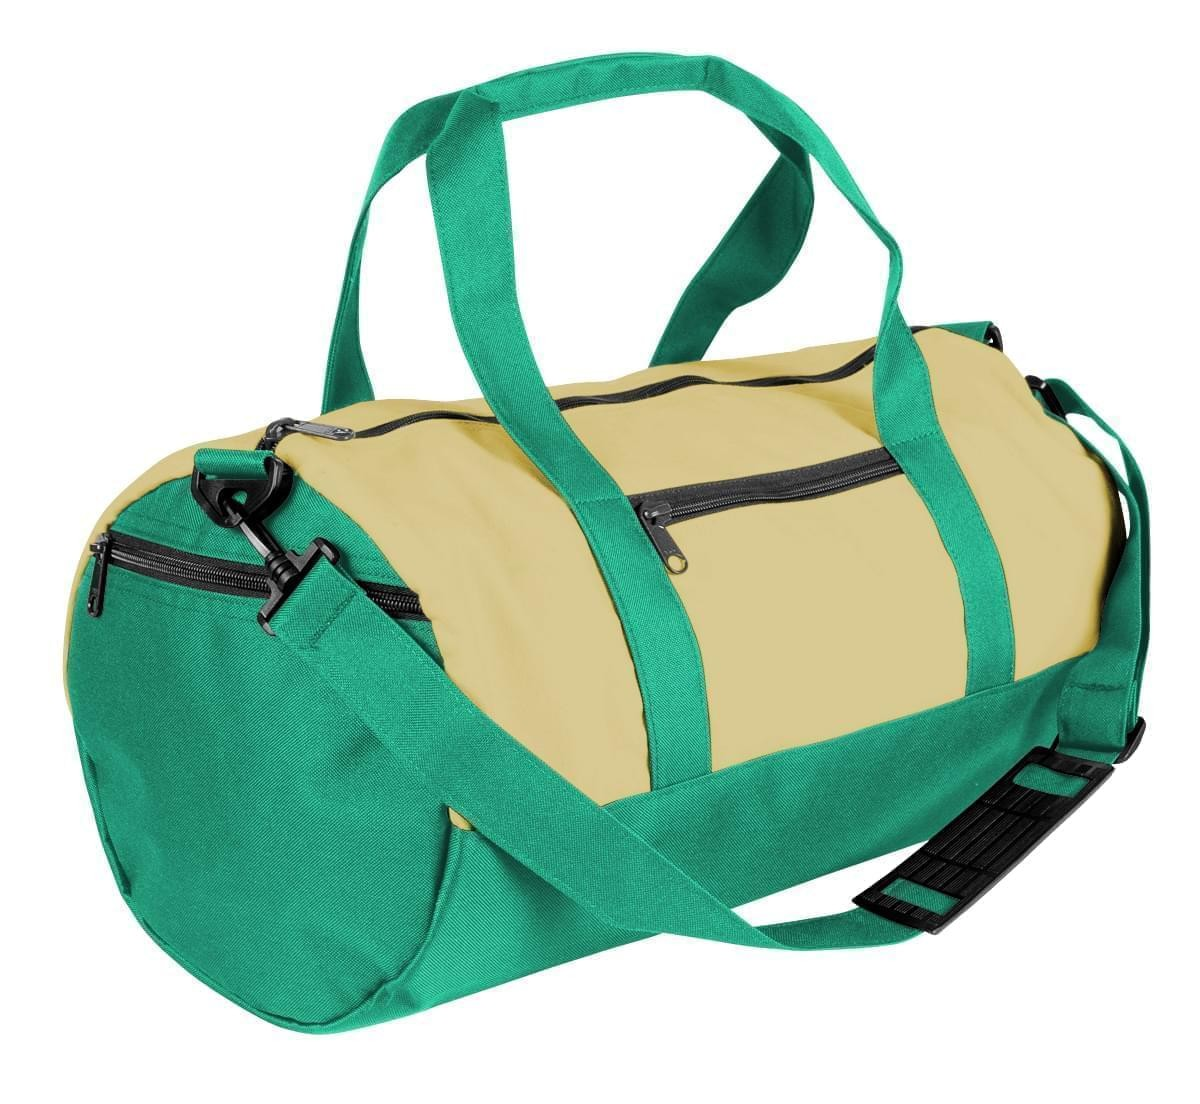 USA Made Canvas Equipment Duffle Bags, Natural-Kelly Green, PMLXZ2AAKH